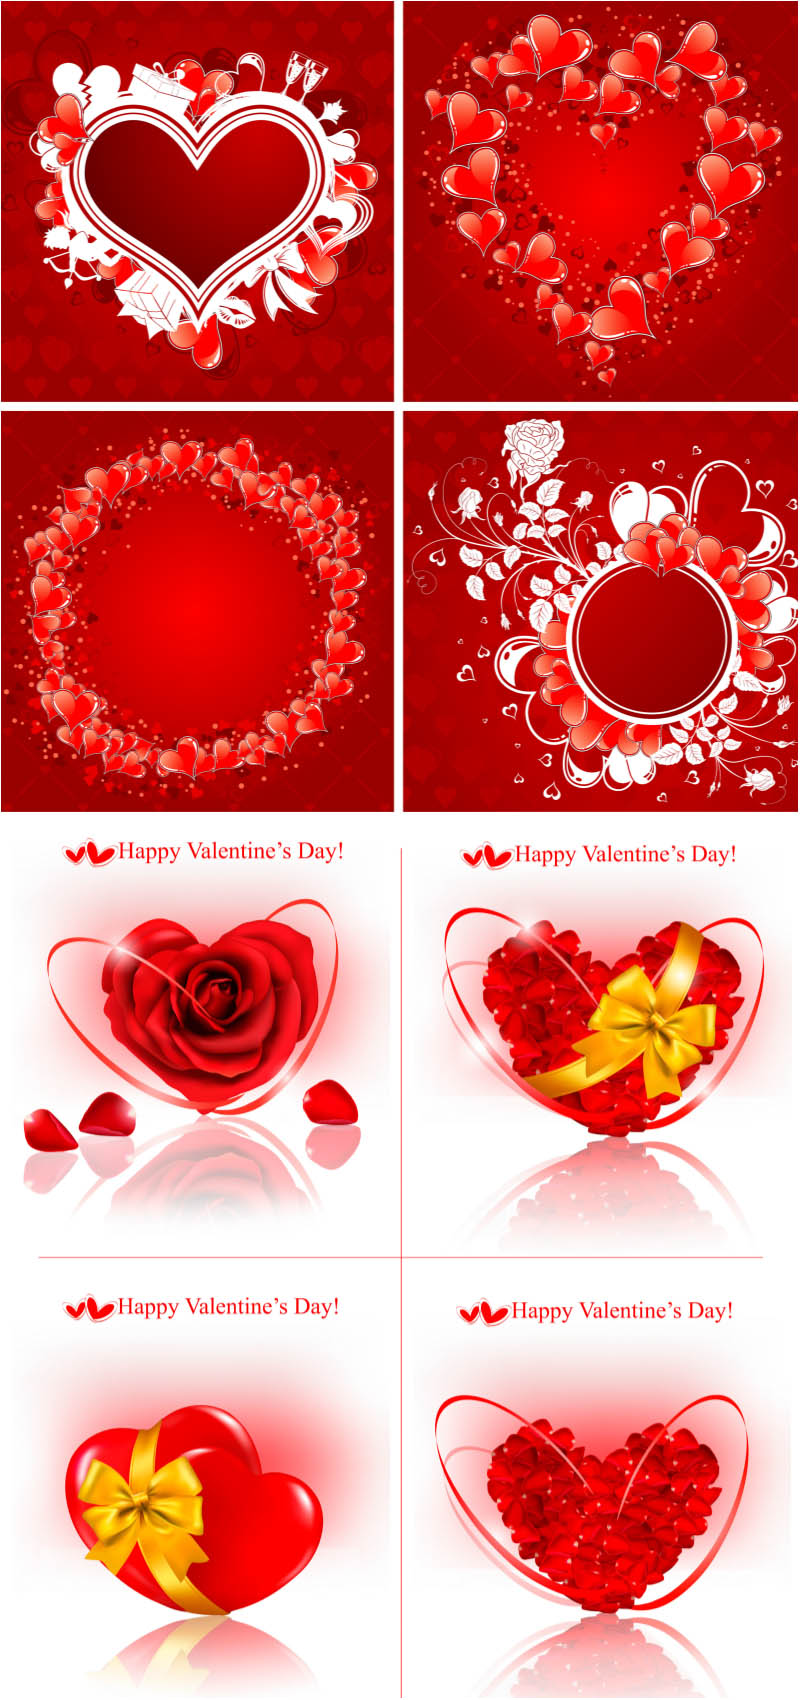 Red heart on red and white backgrounds vector